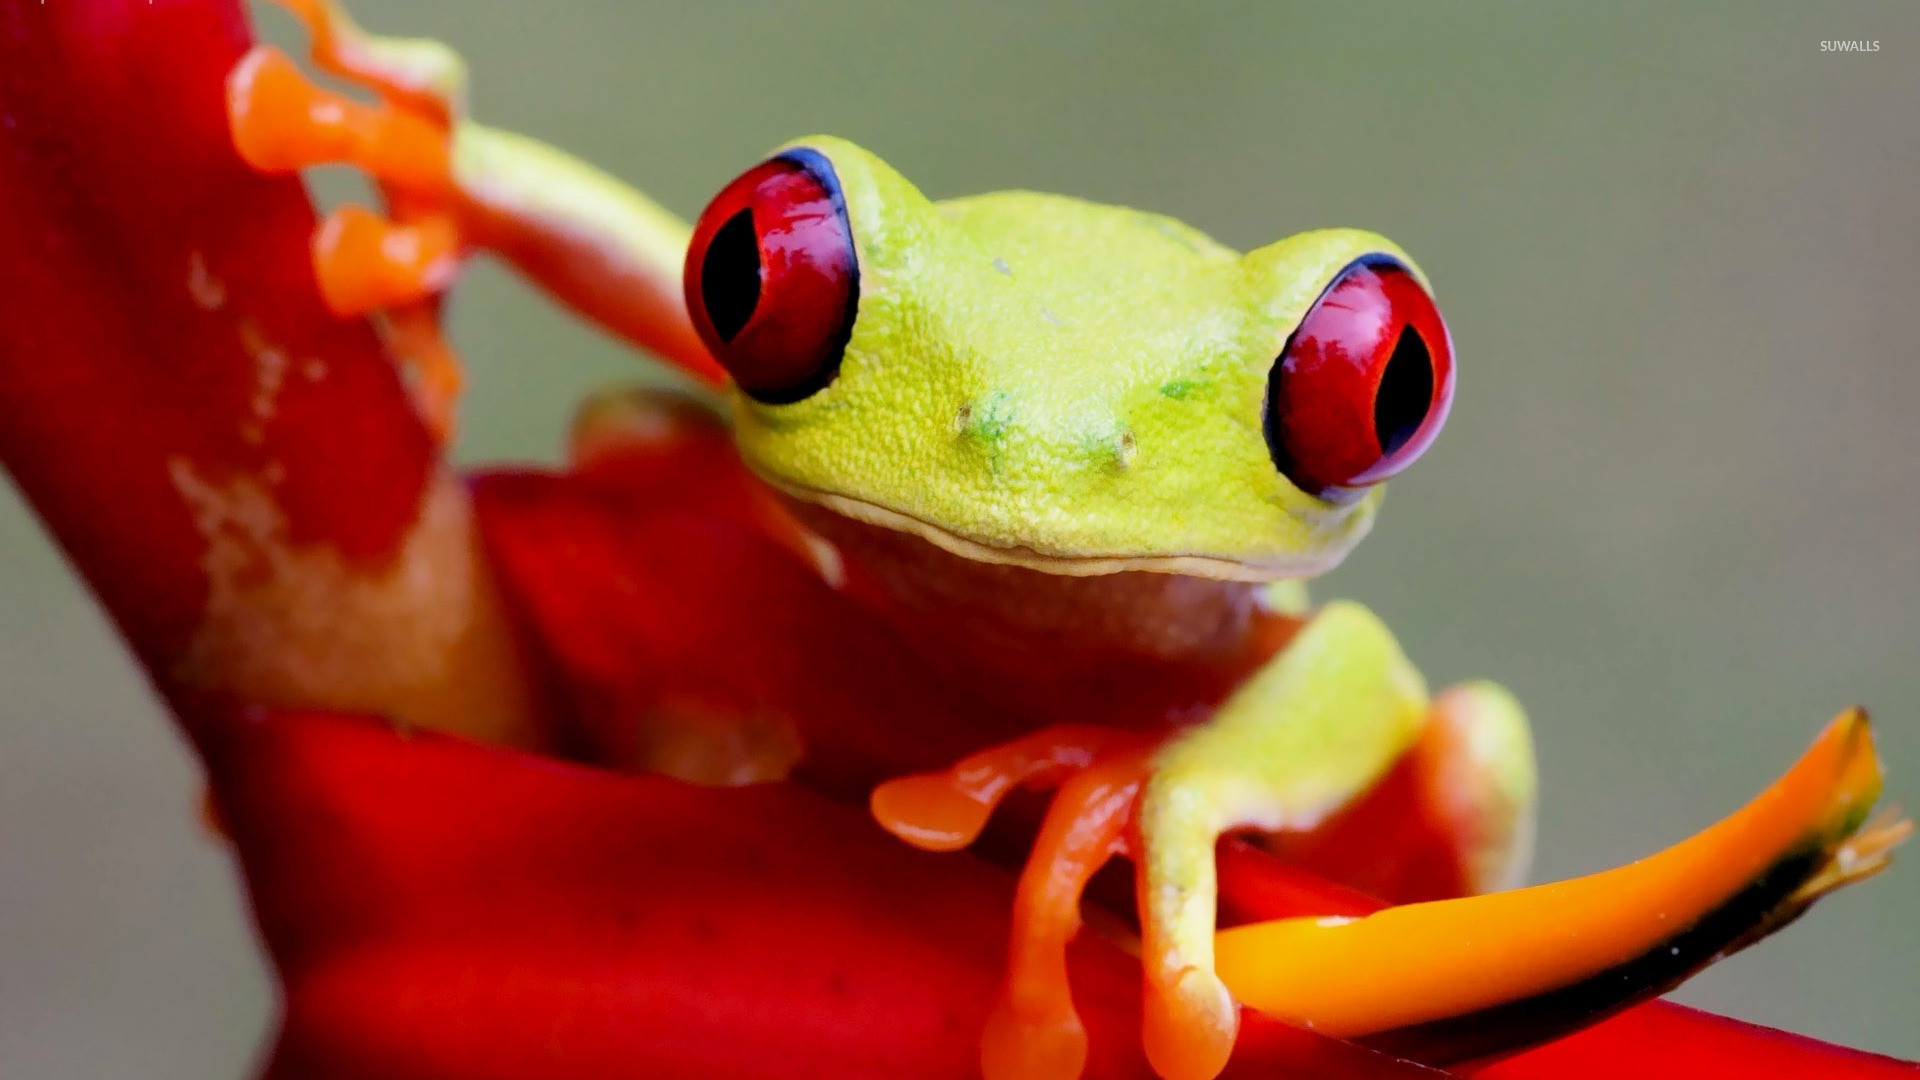 Res: 1920x1080, Red Eyed Tree Frog Wallpapers 14 - 1920 X 1080